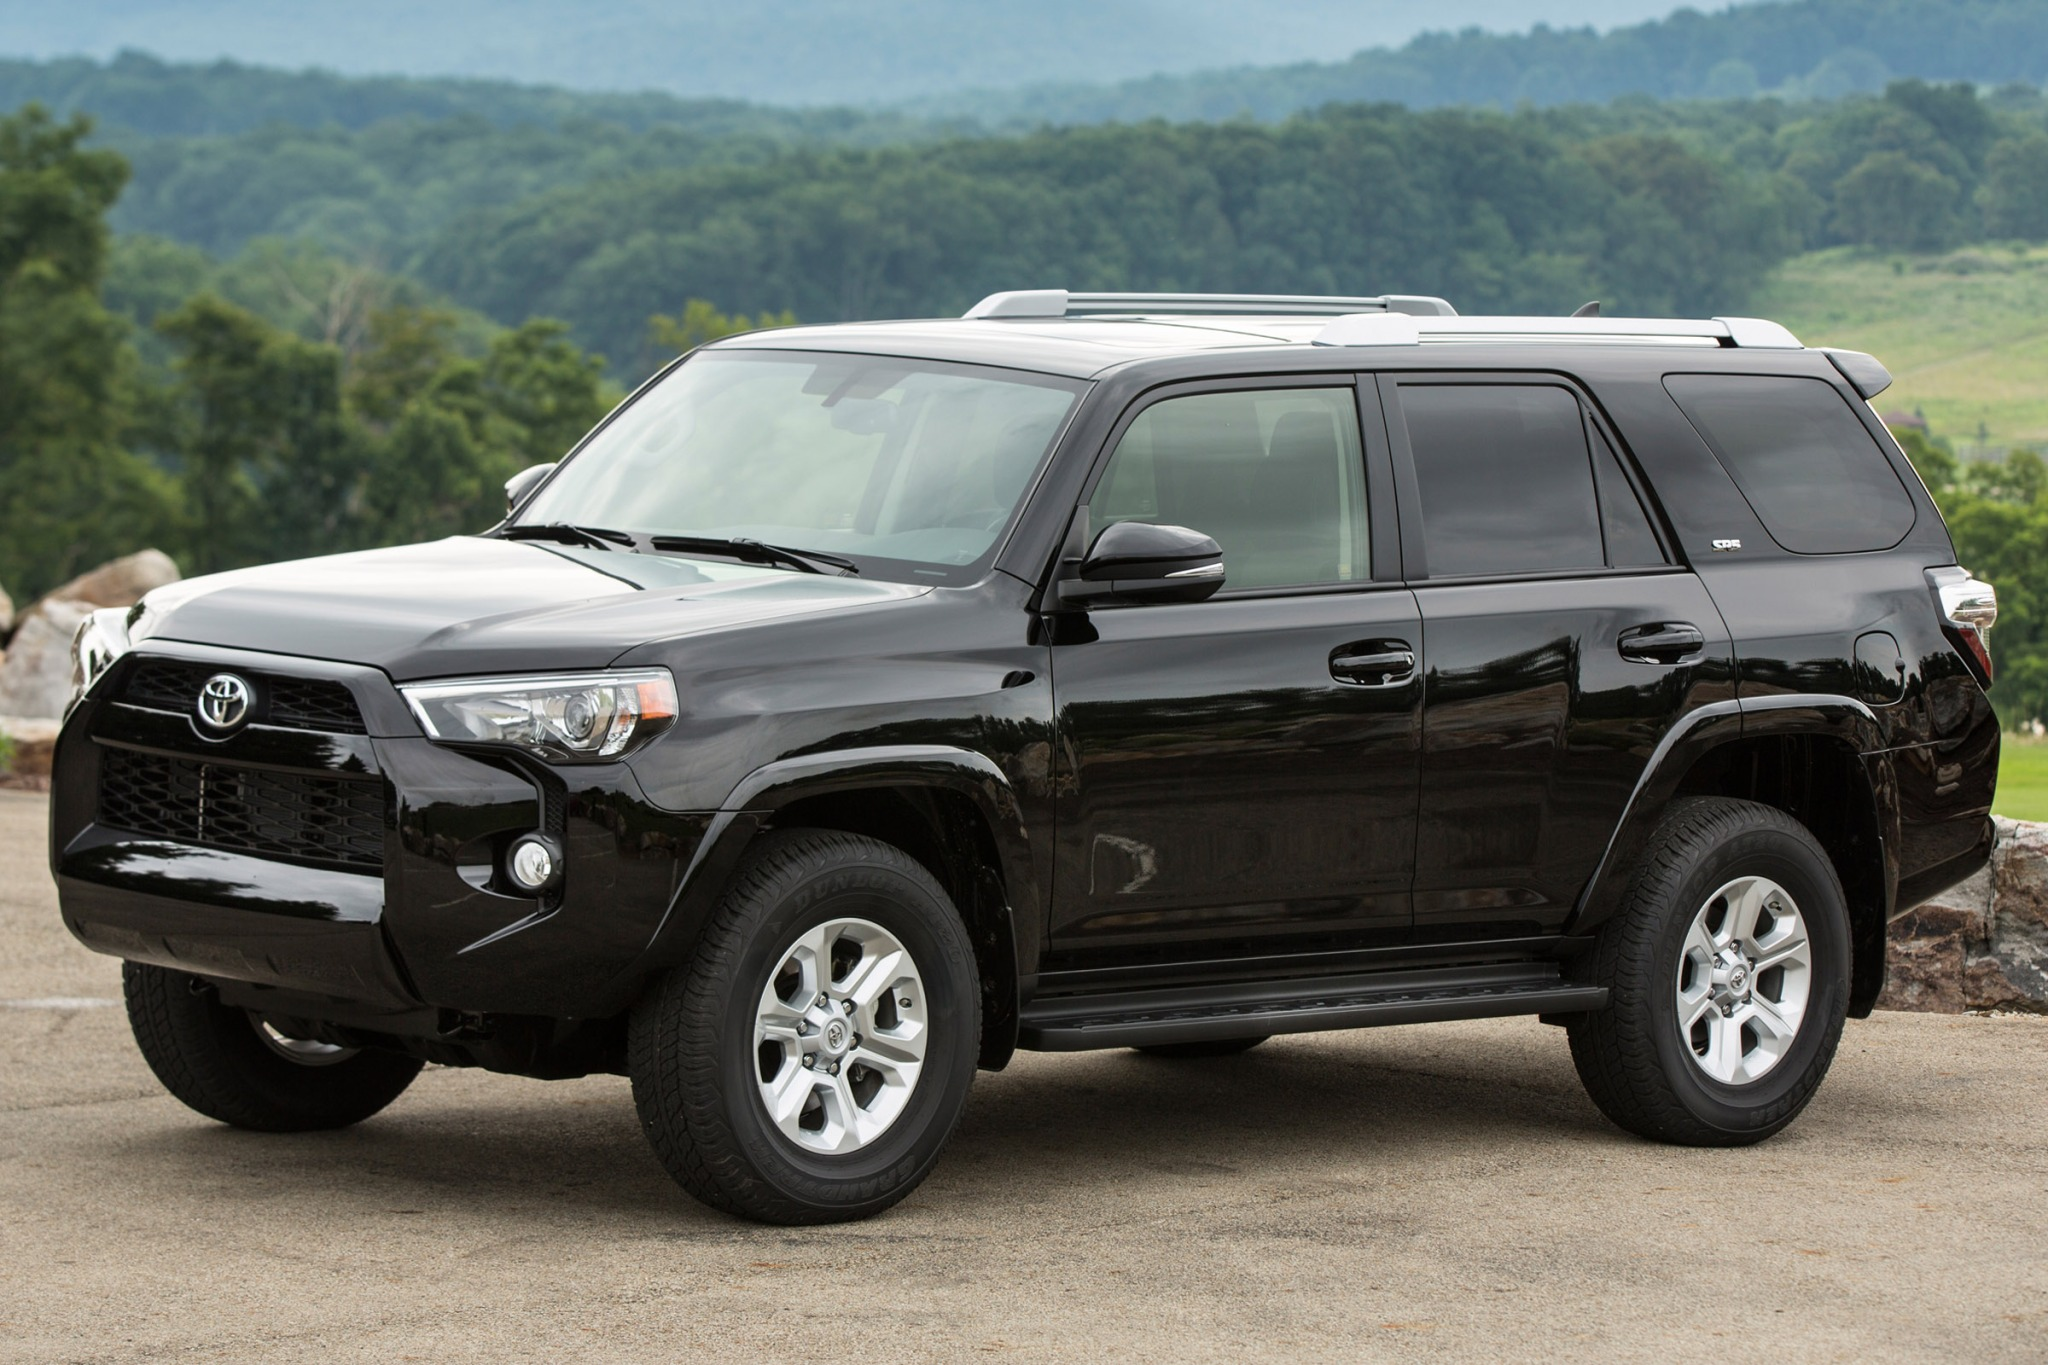 2014 Toyota 4Runner Information and photos ZombieDrive